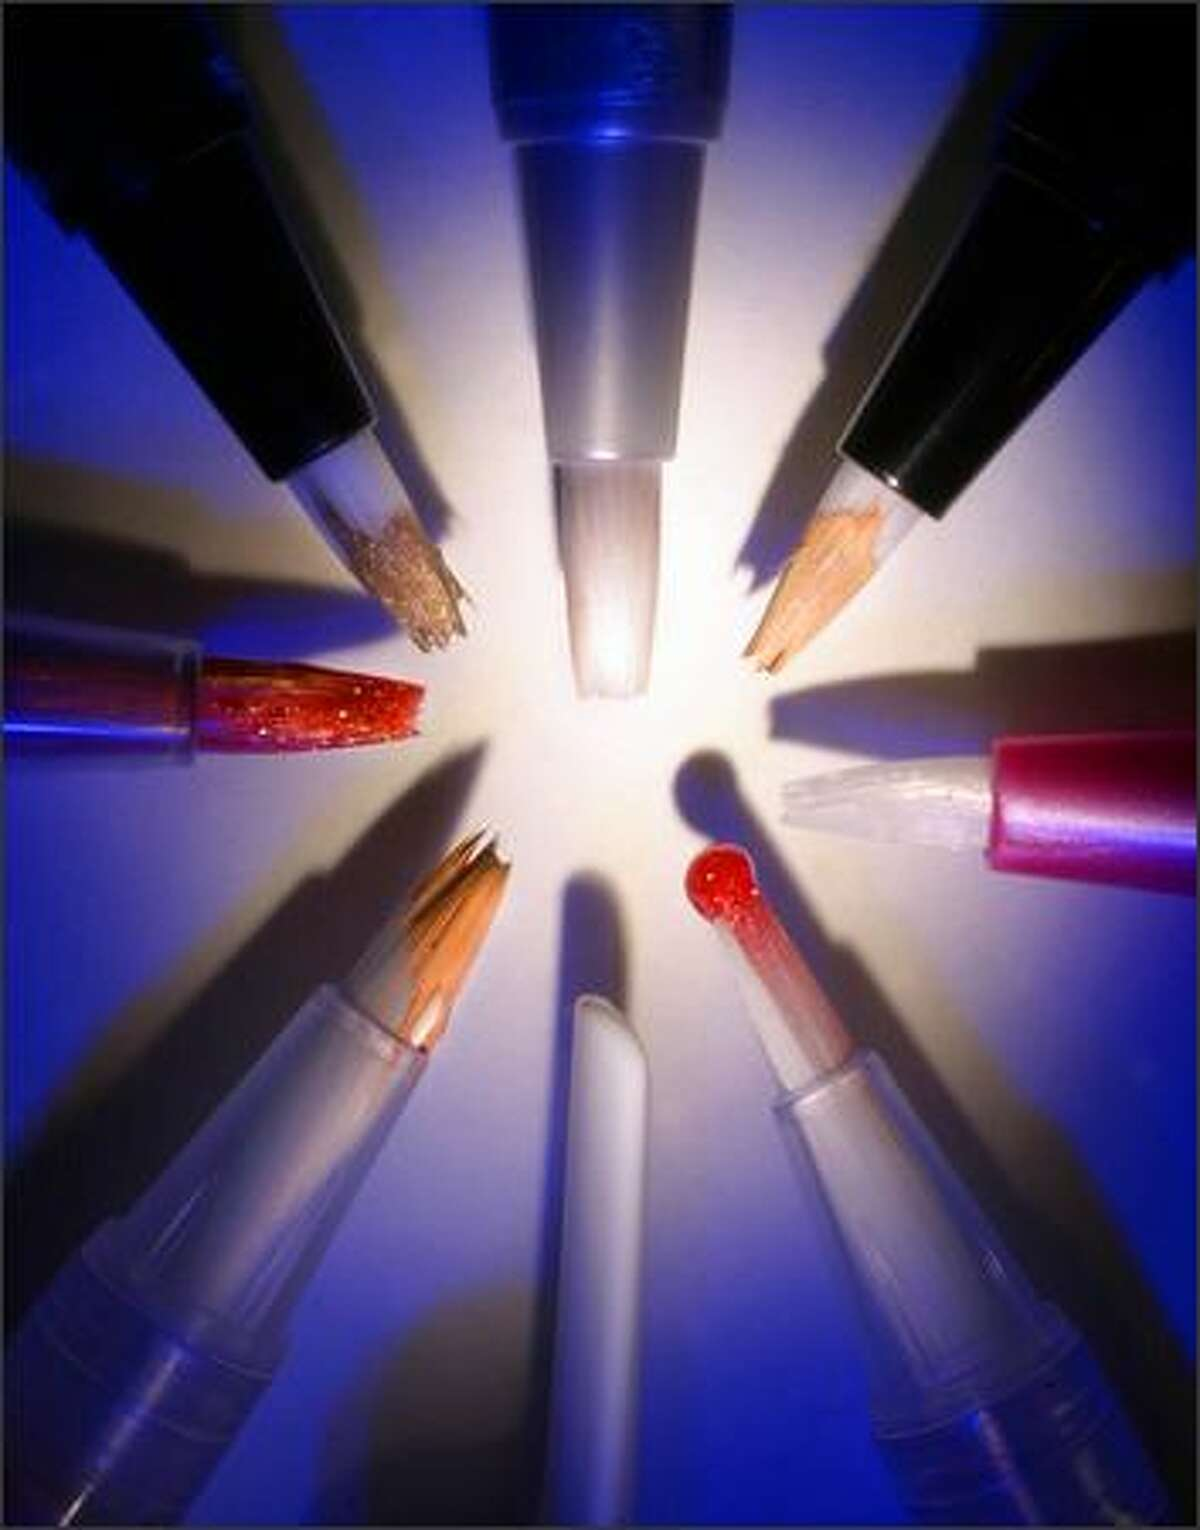 Pens deliver a variety of products, such as eye shadow, lip gloss and concealer.